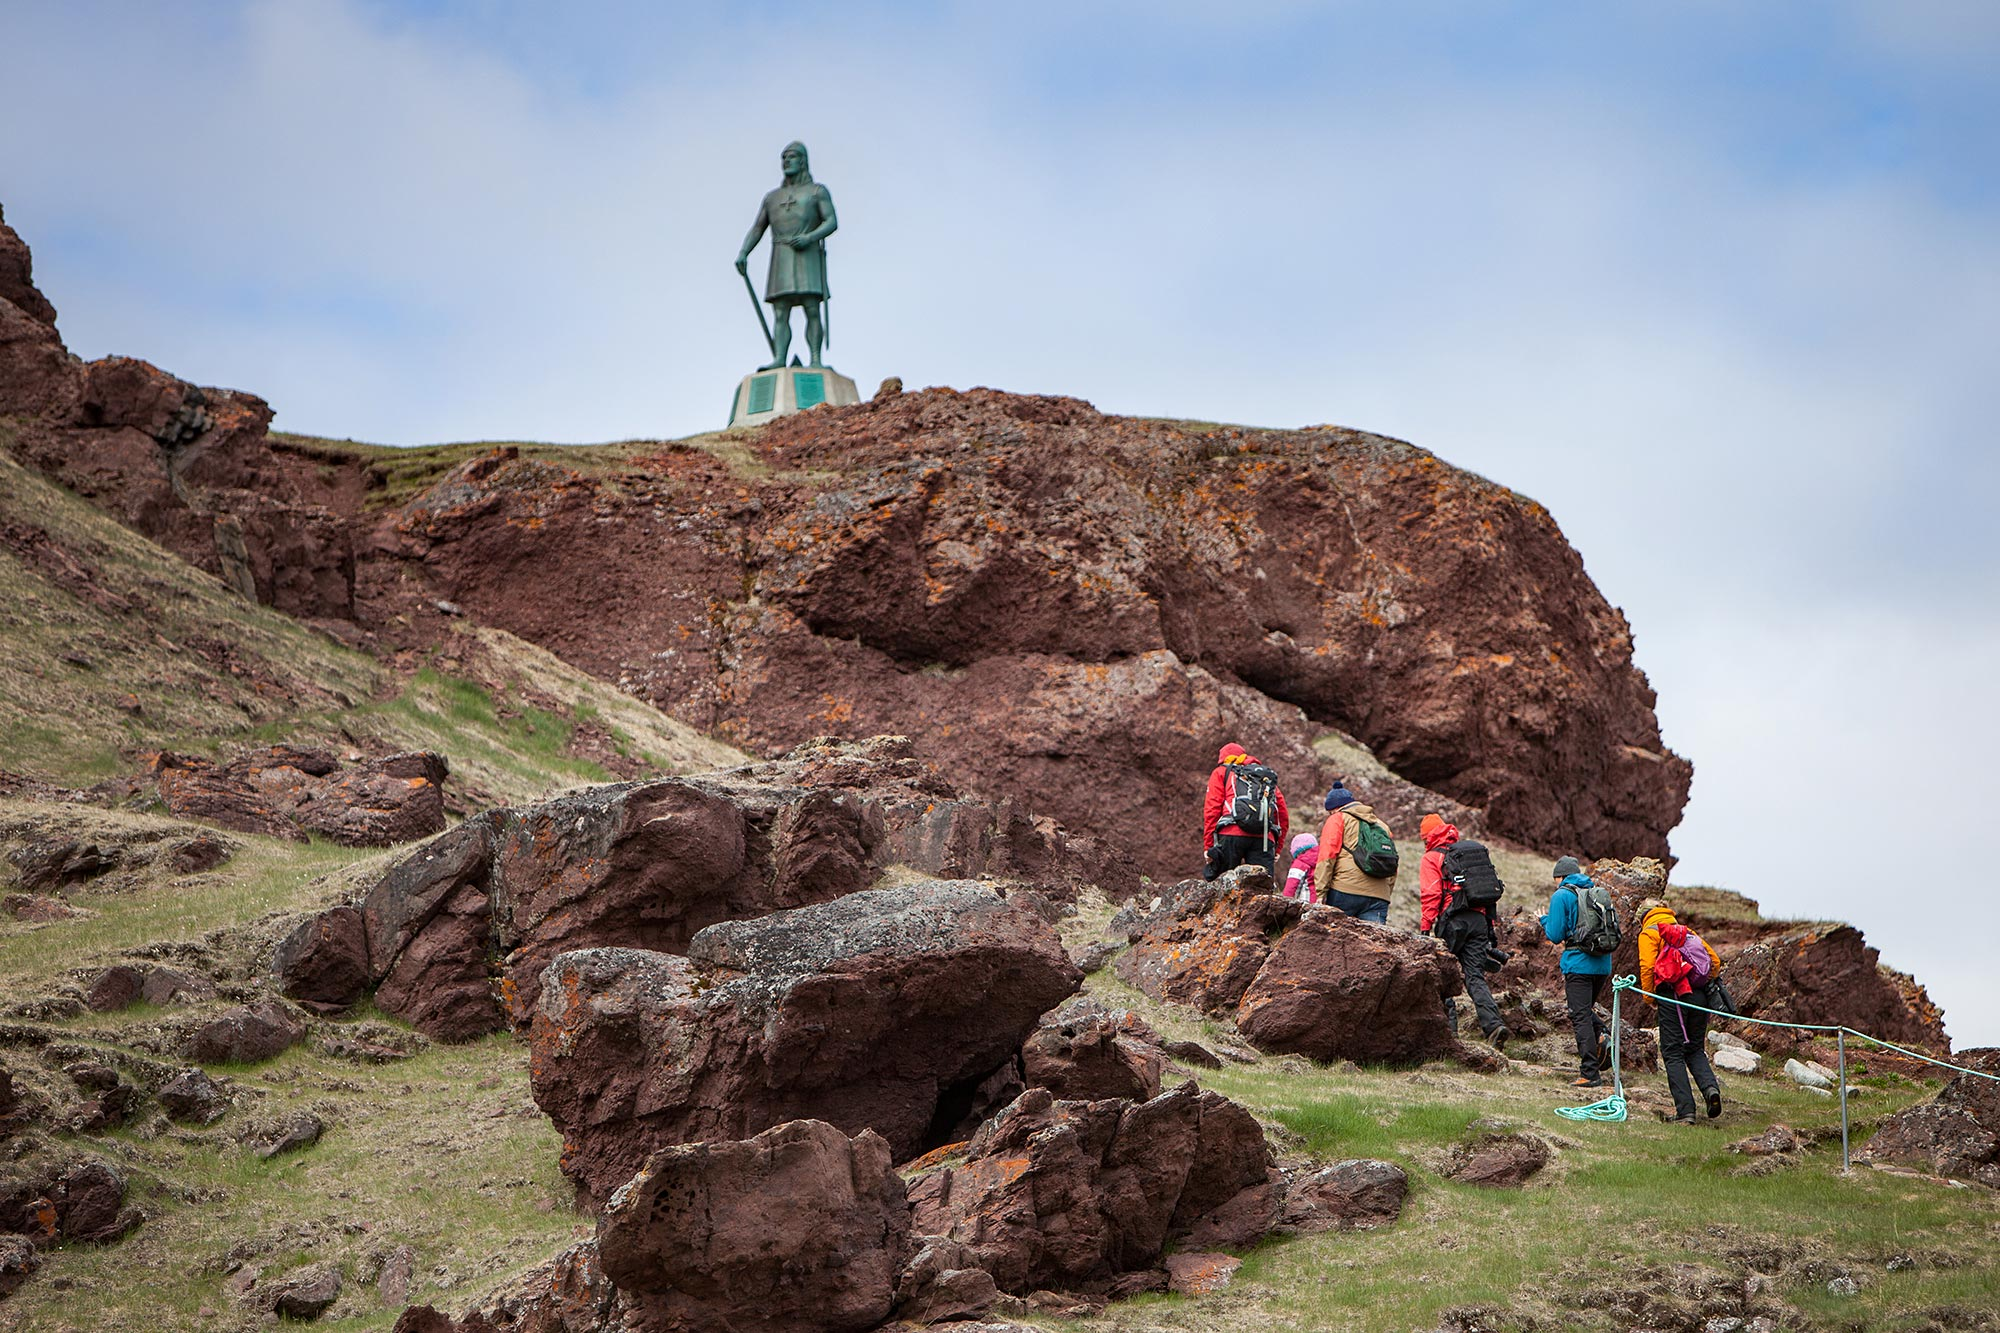 Sculpture and memorial of Erik the Red who found Greenland